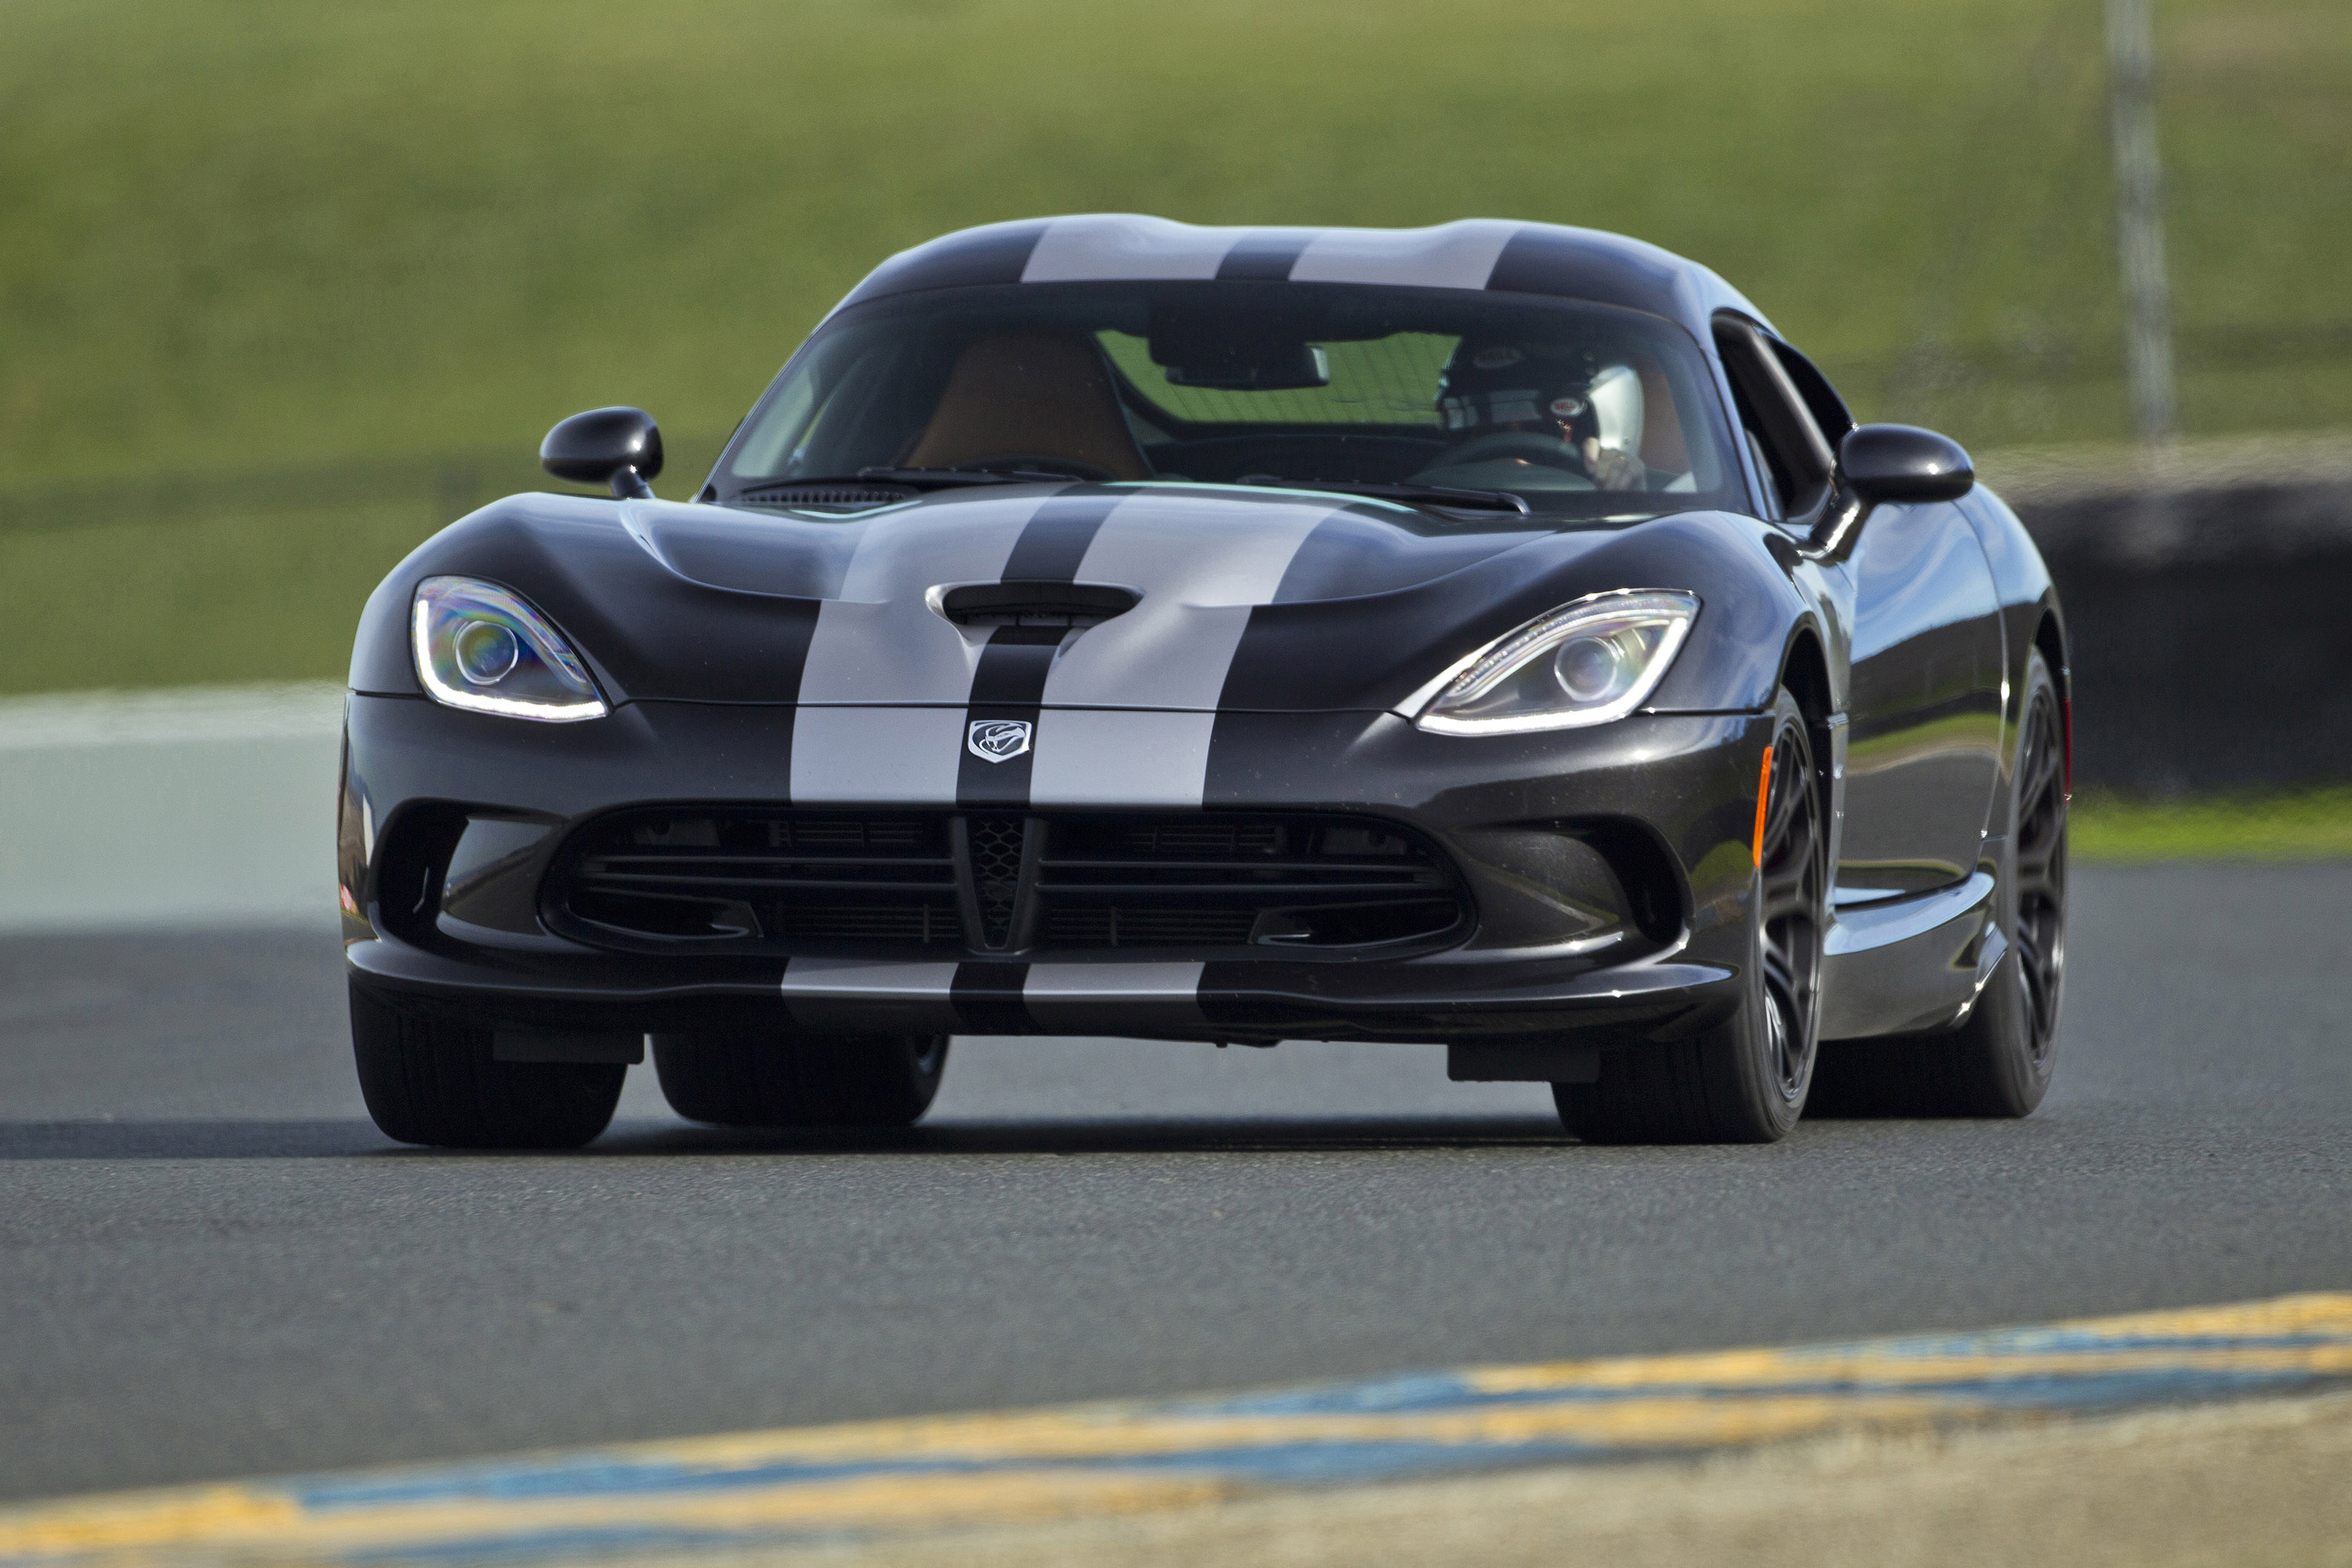 2015 Dodge Viper Gets More Horsepower and $15k Price Drop